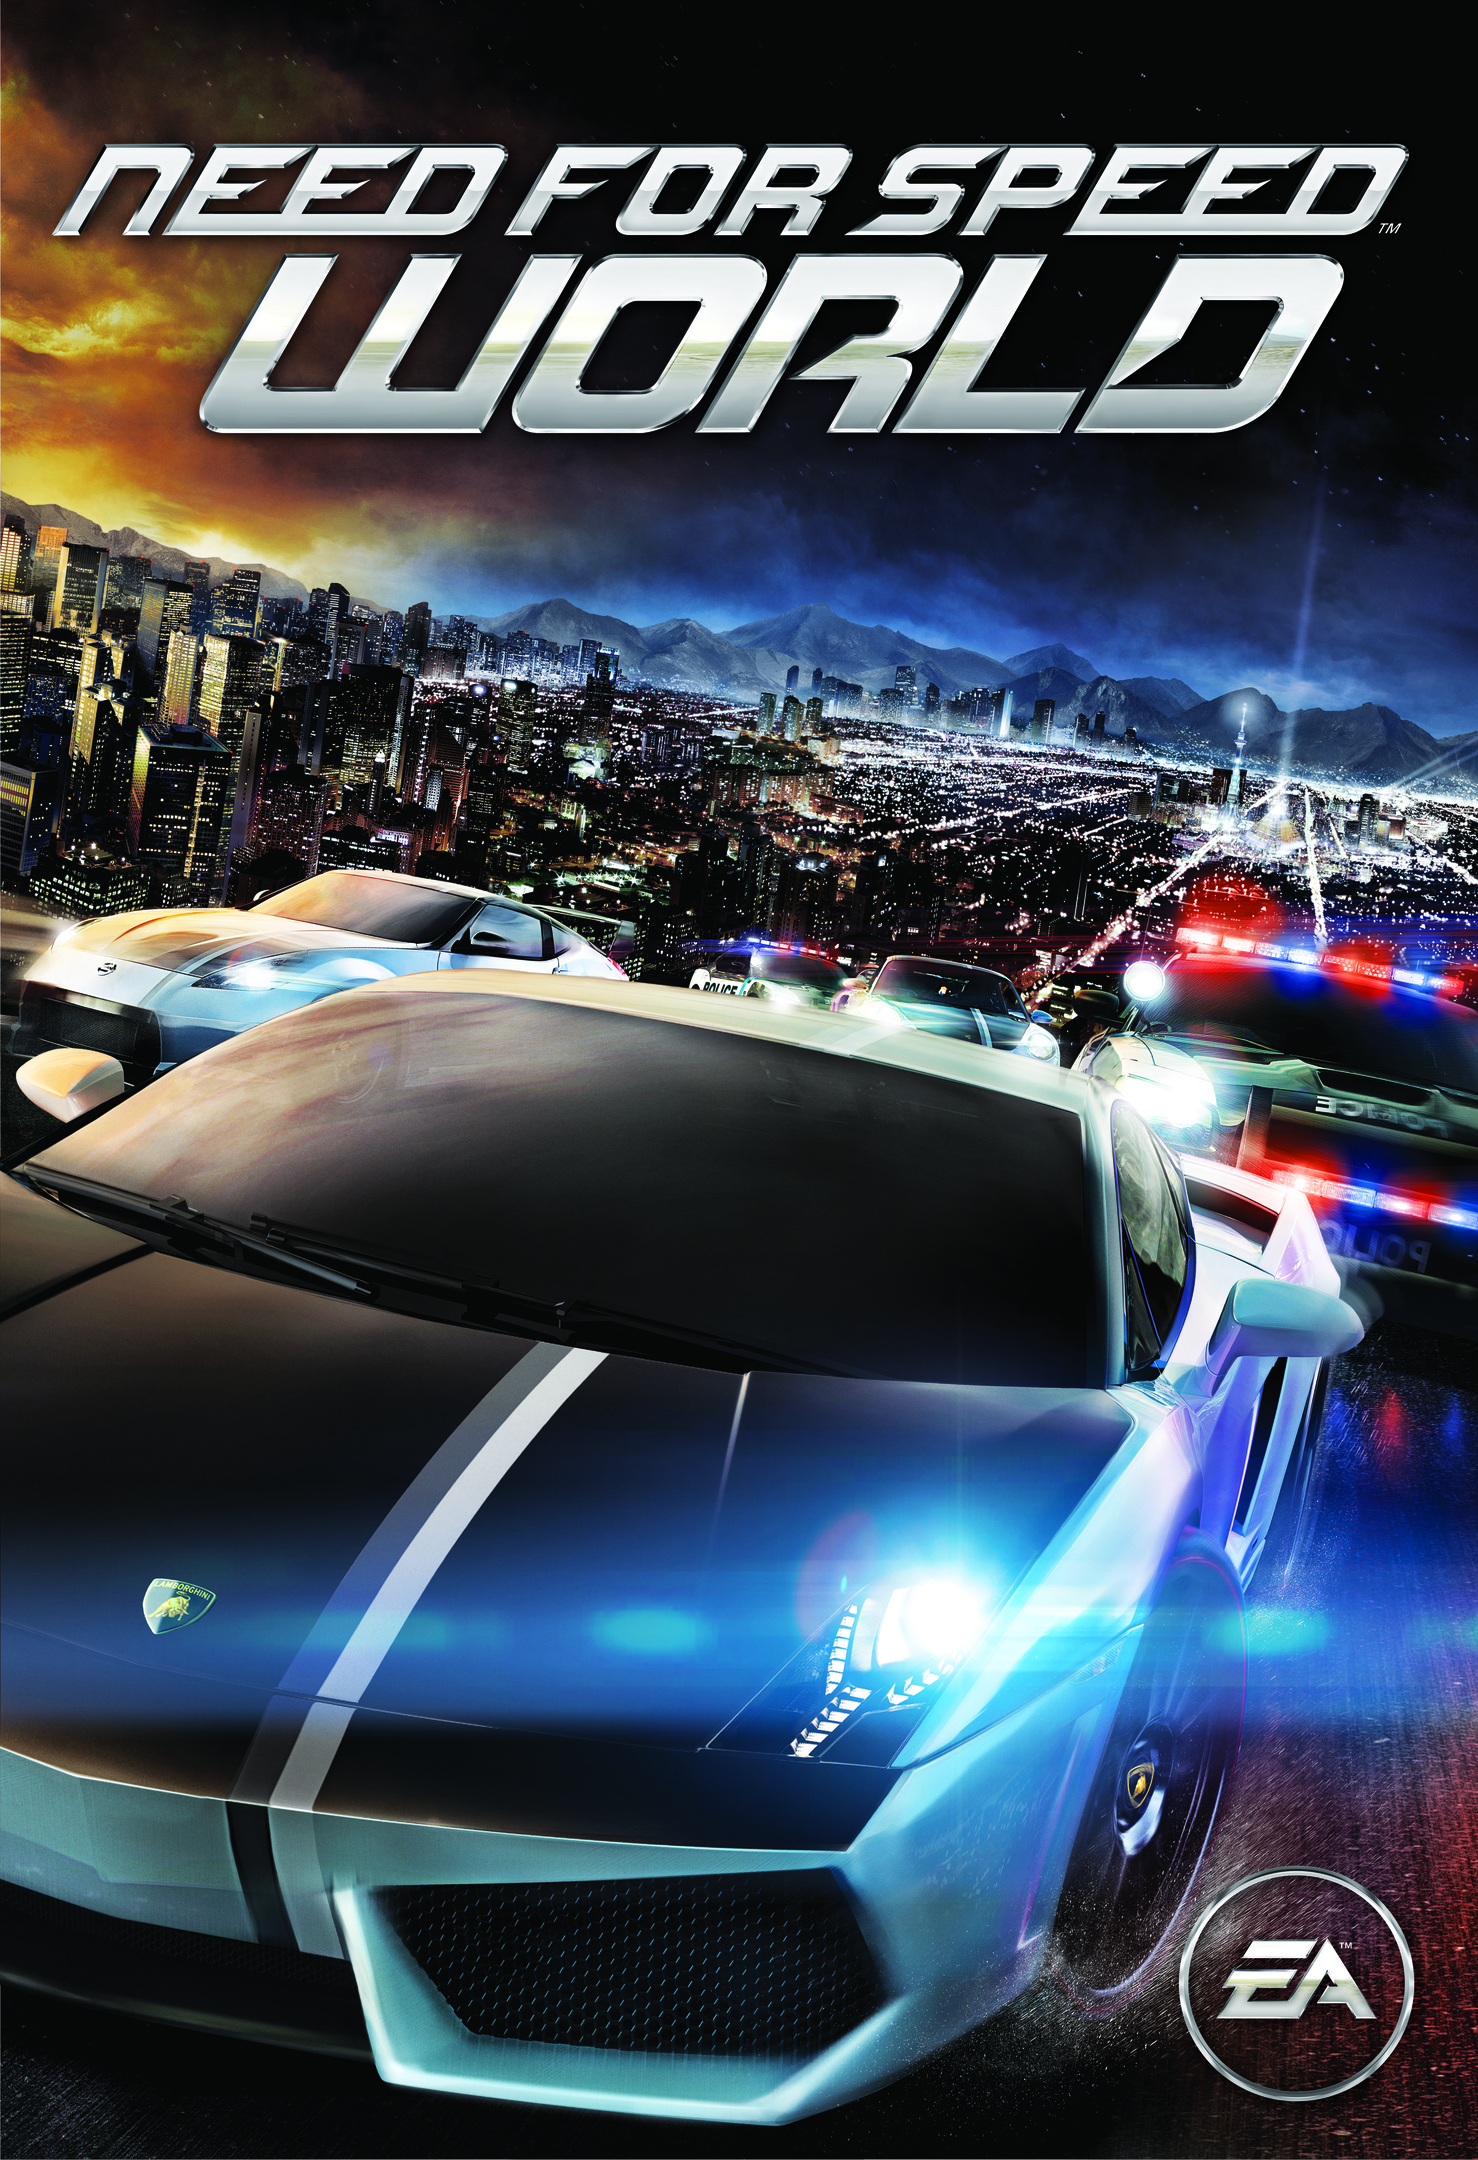 Need for speed world need for speed wiki fandom powered by wikia need for speed world gumiabroncs Images